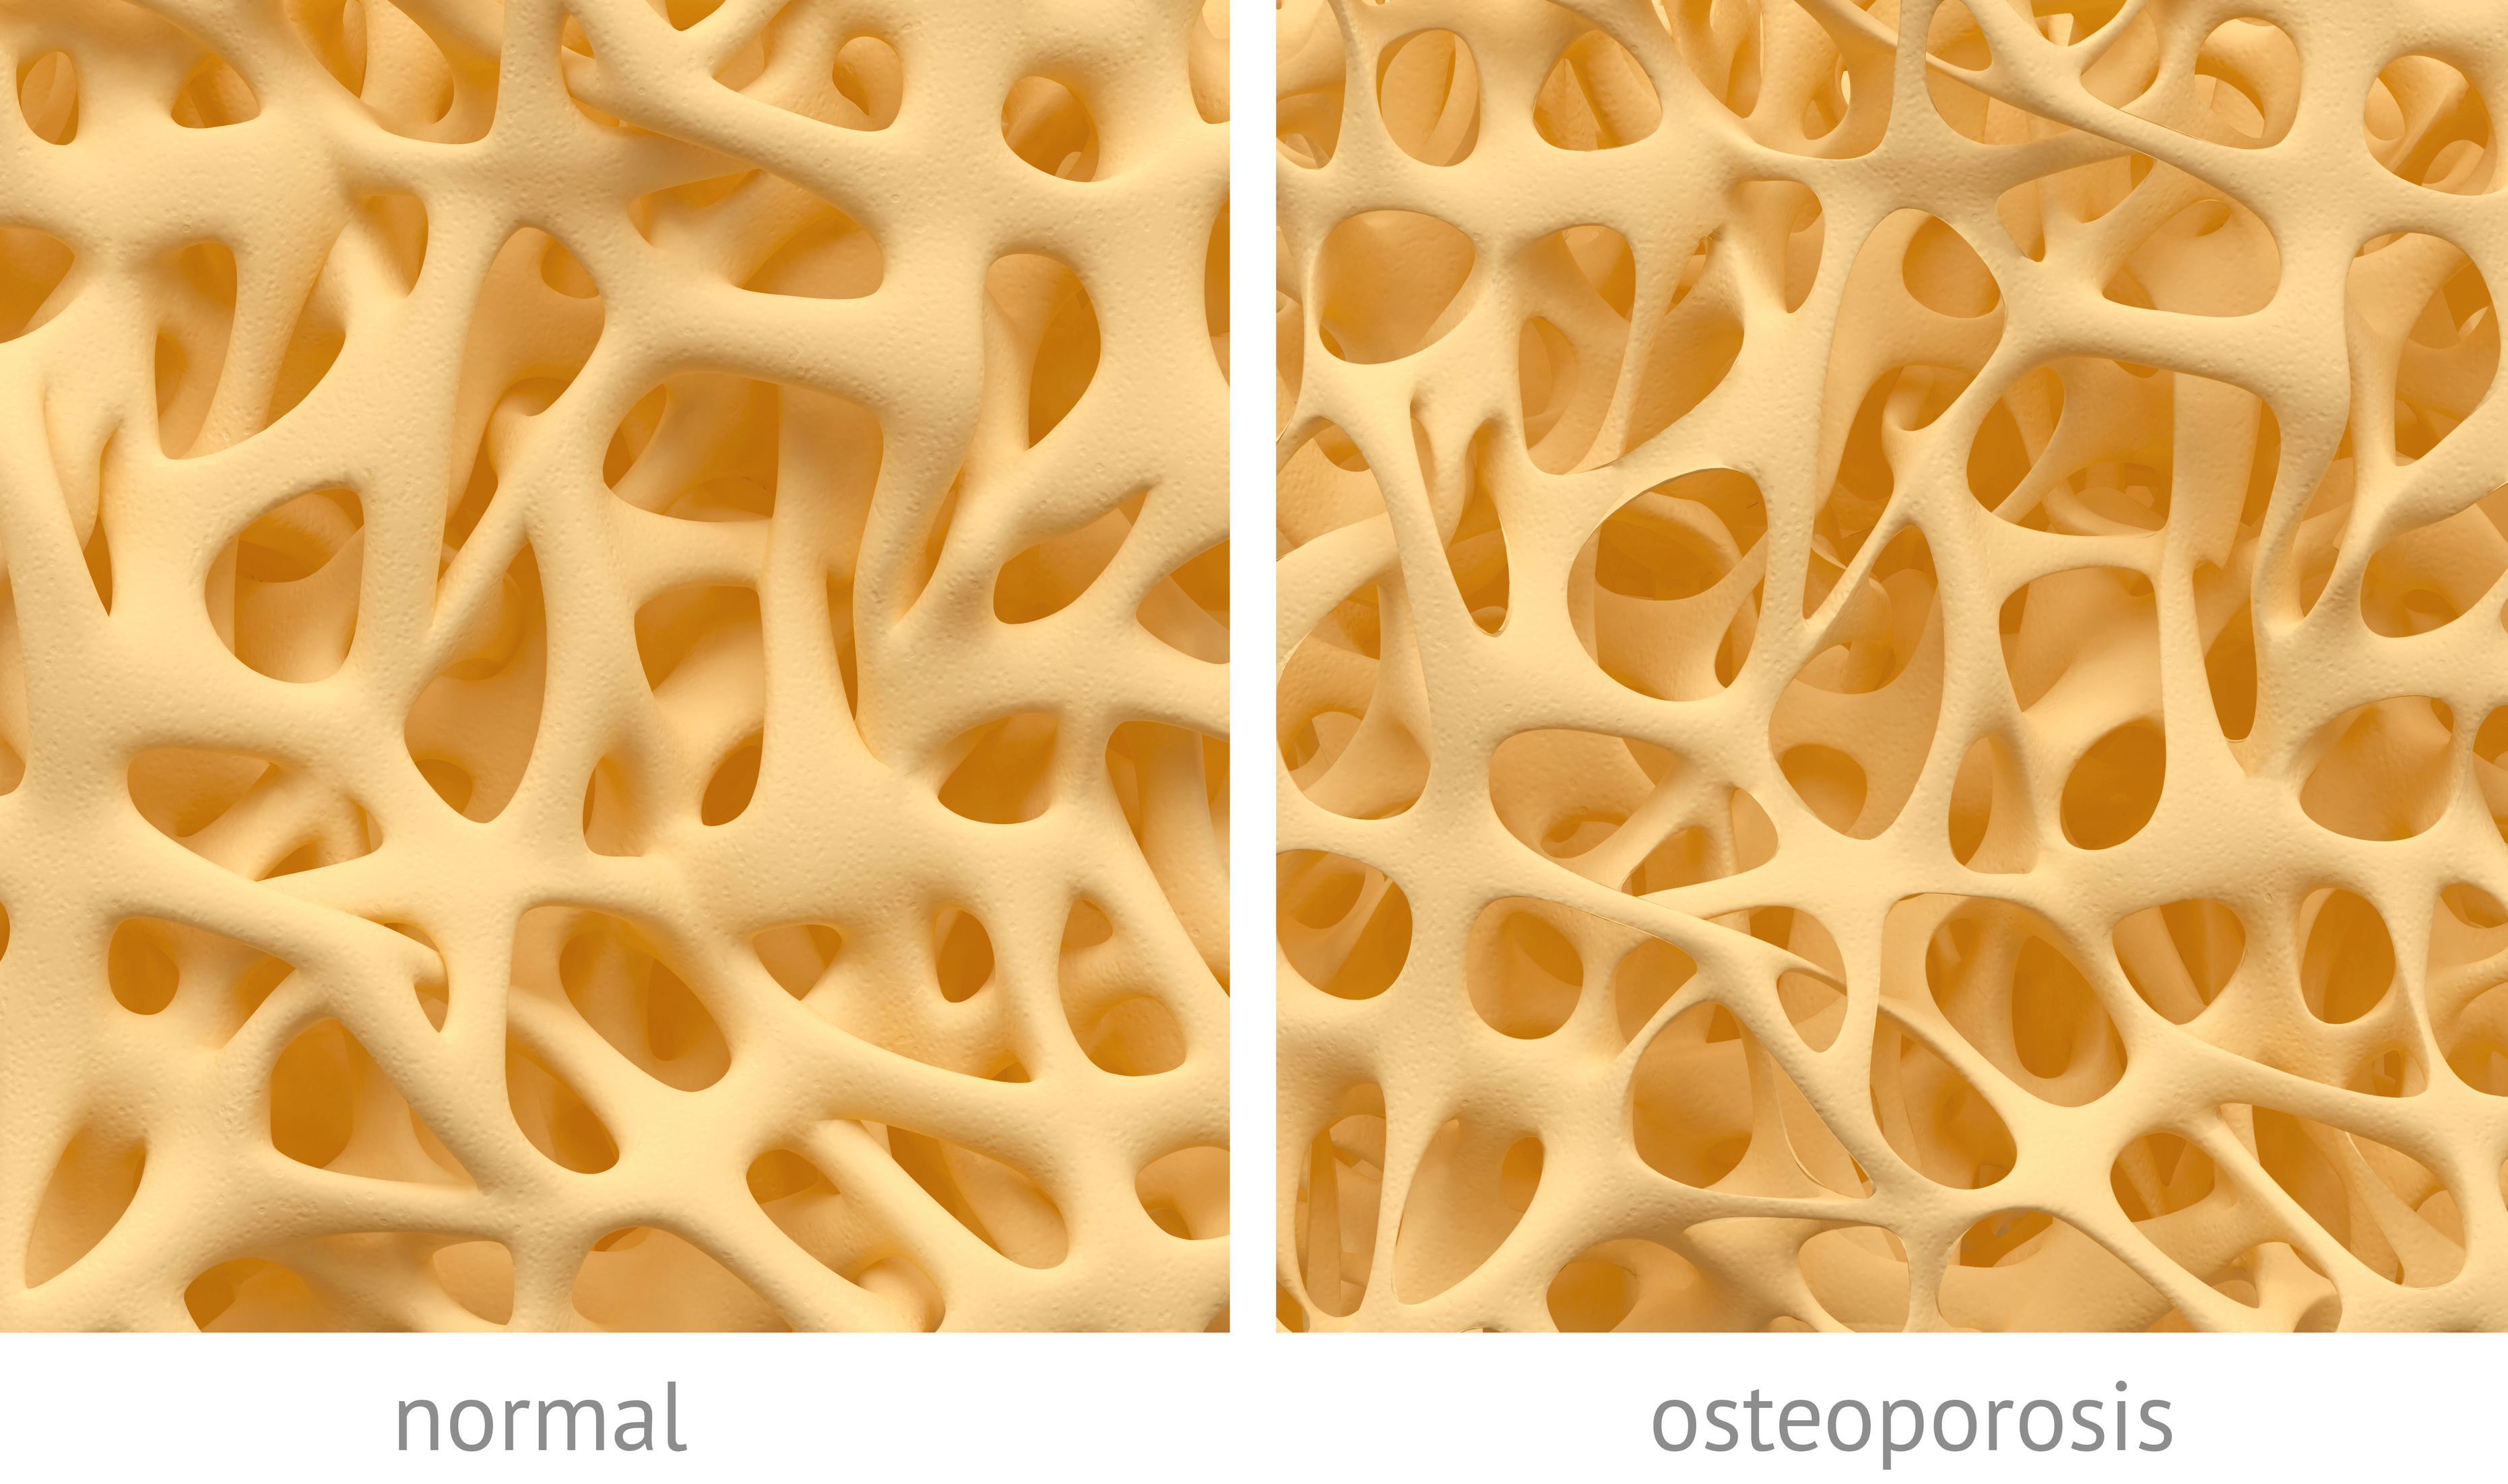 Osteoporosis - event type